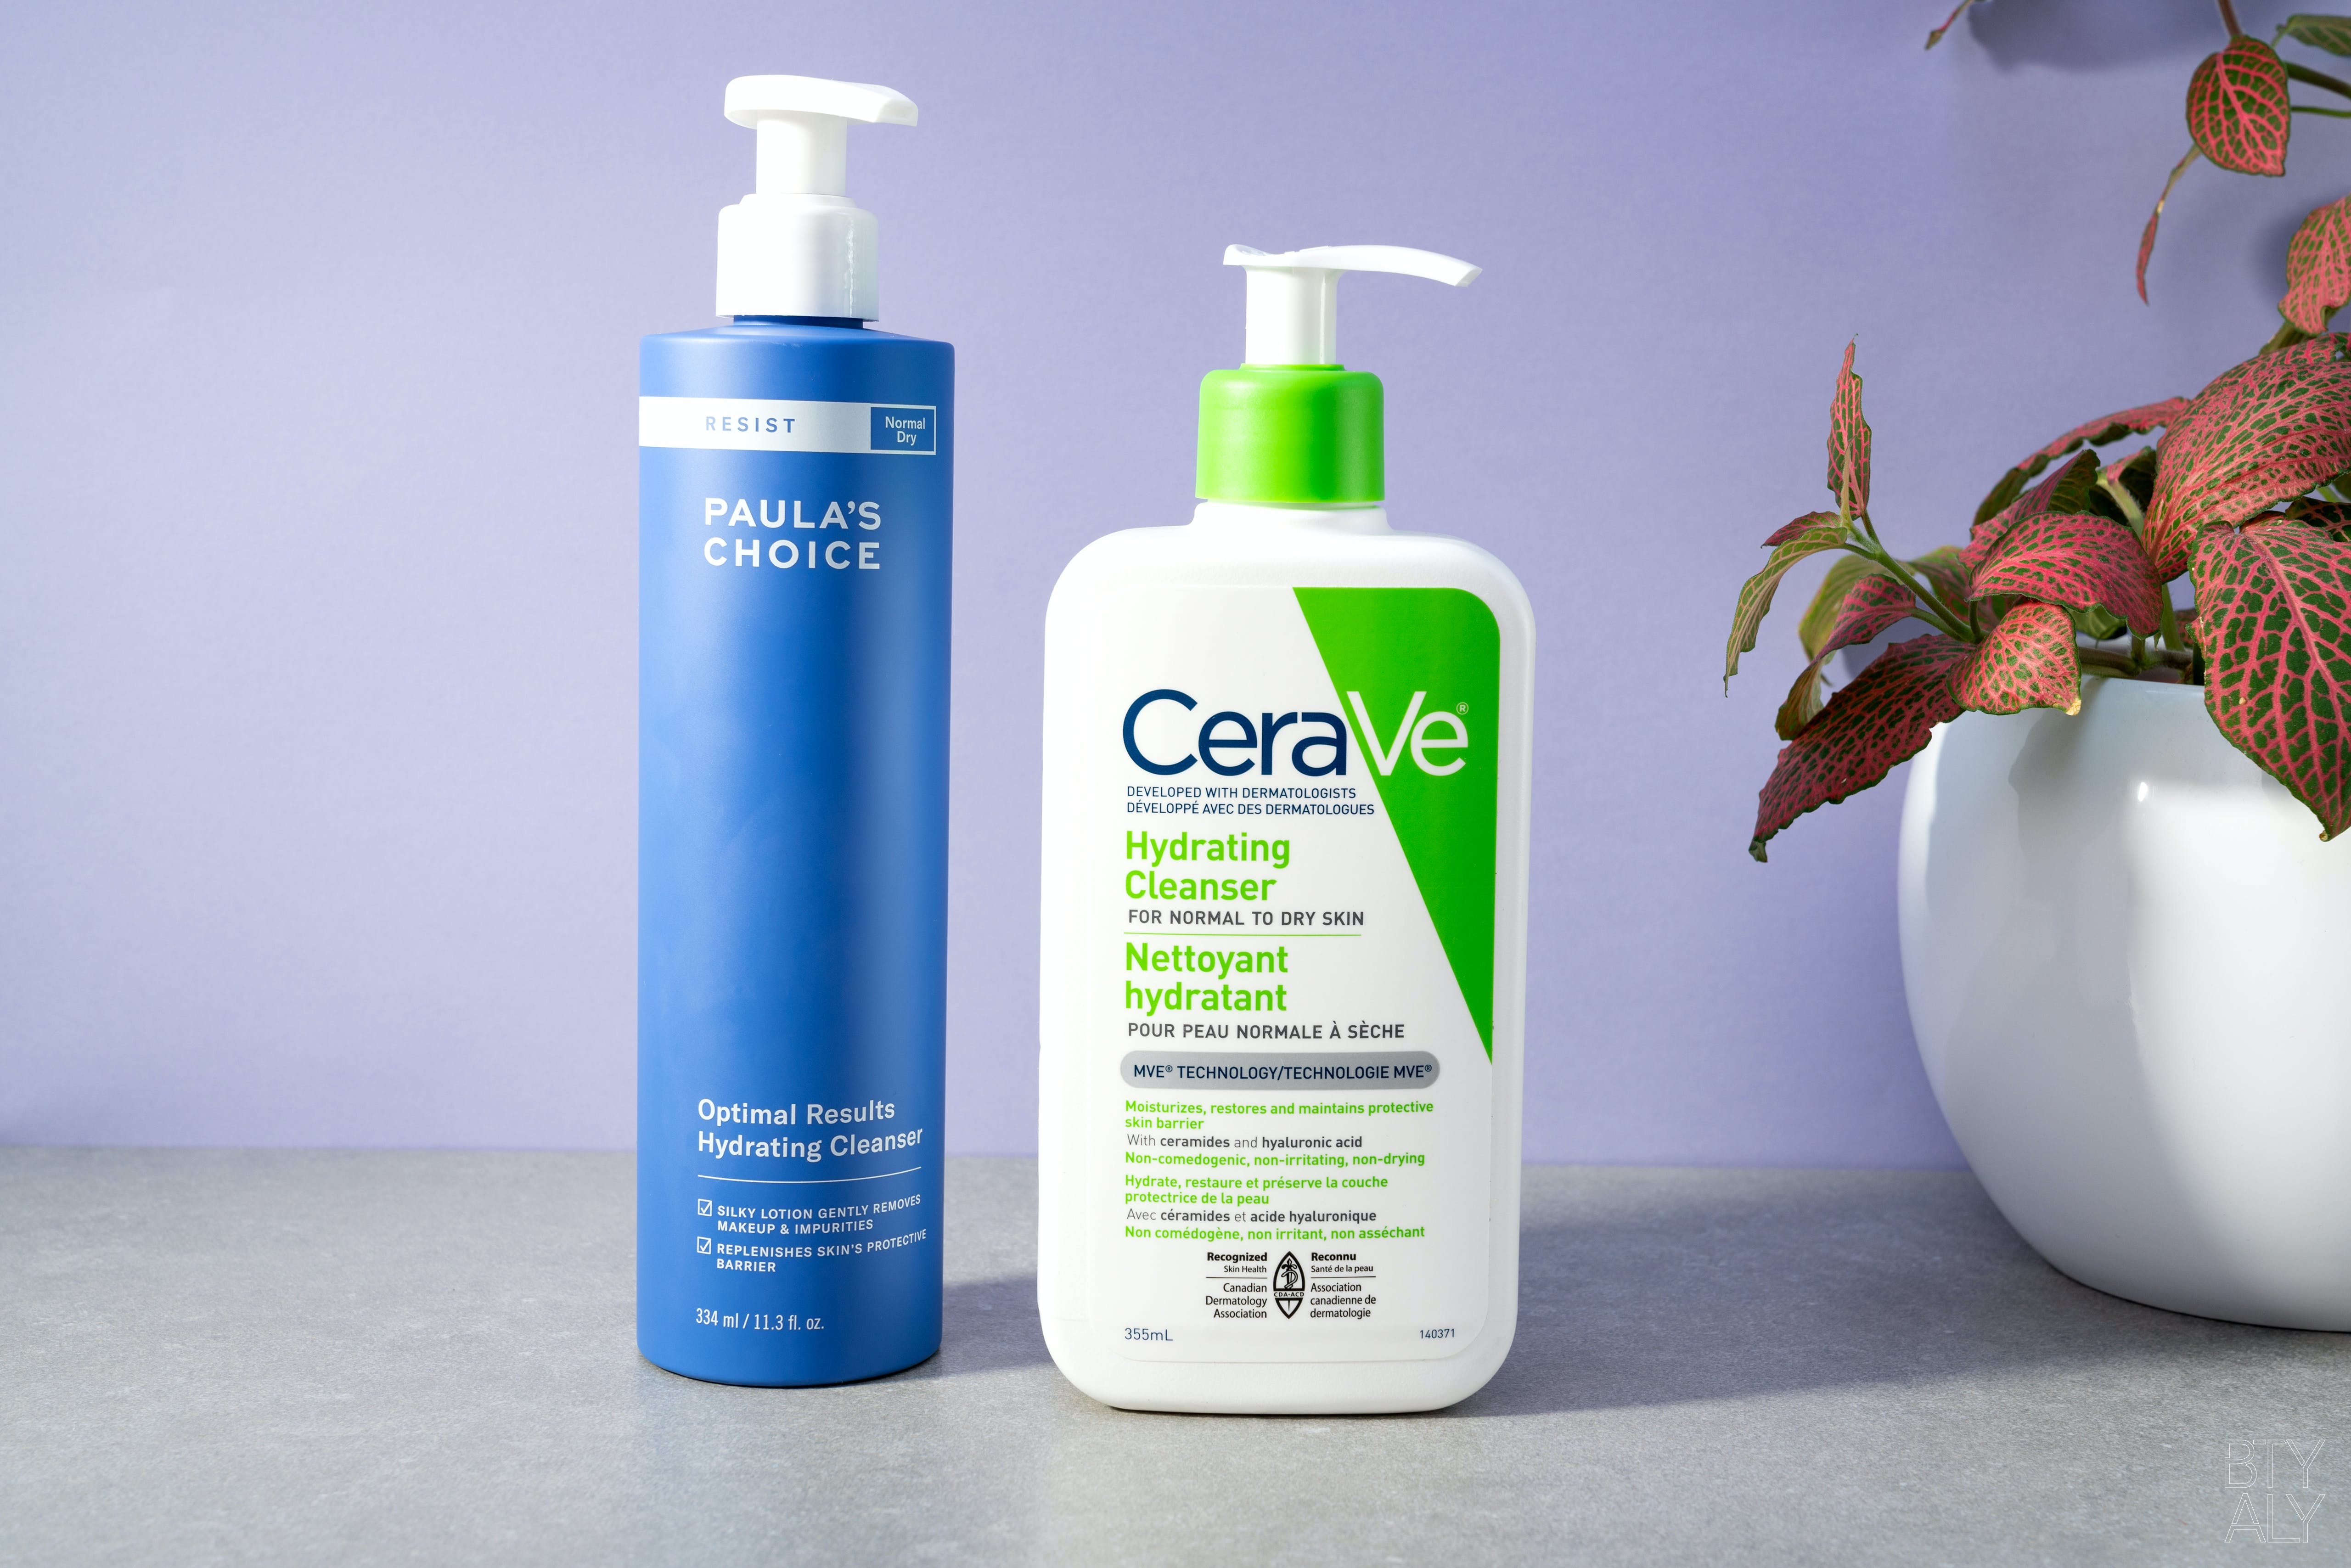 Paula's Choice Optimal Results Hydrating Cleanser, CeraVe Hydrating Cleanser